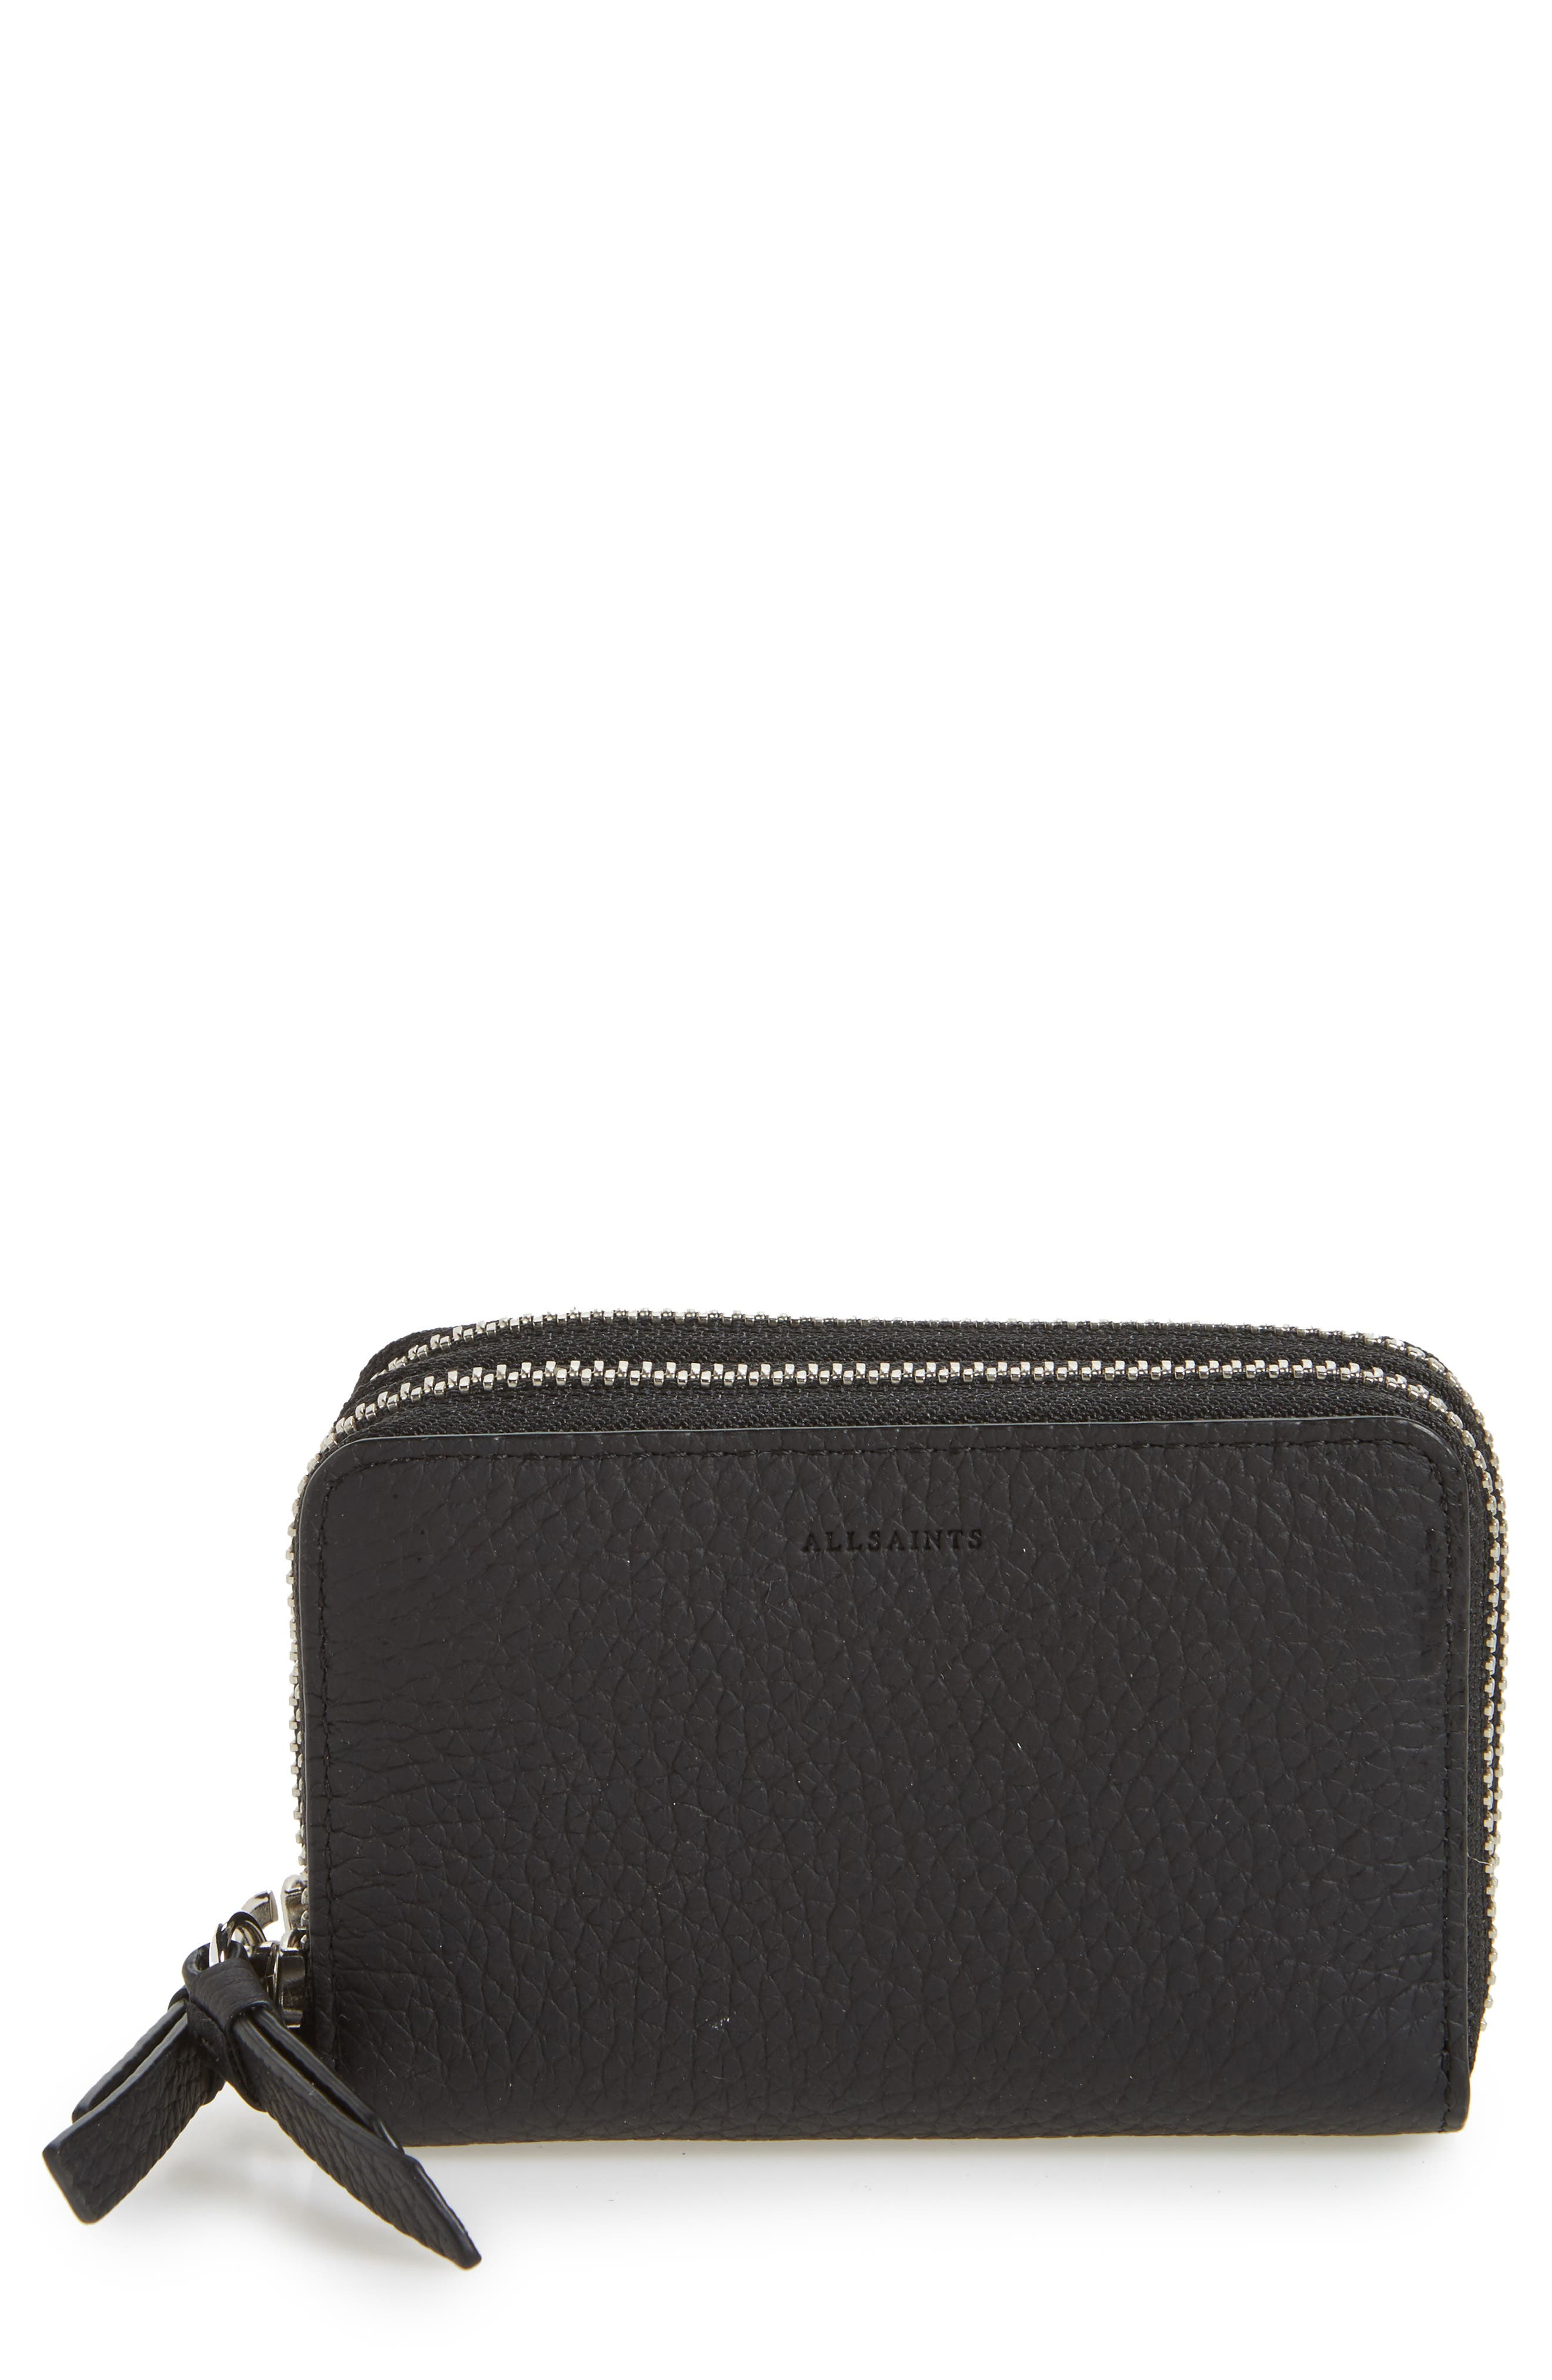 Main Image - ALLSAINTS Fetch Leather Card Holder